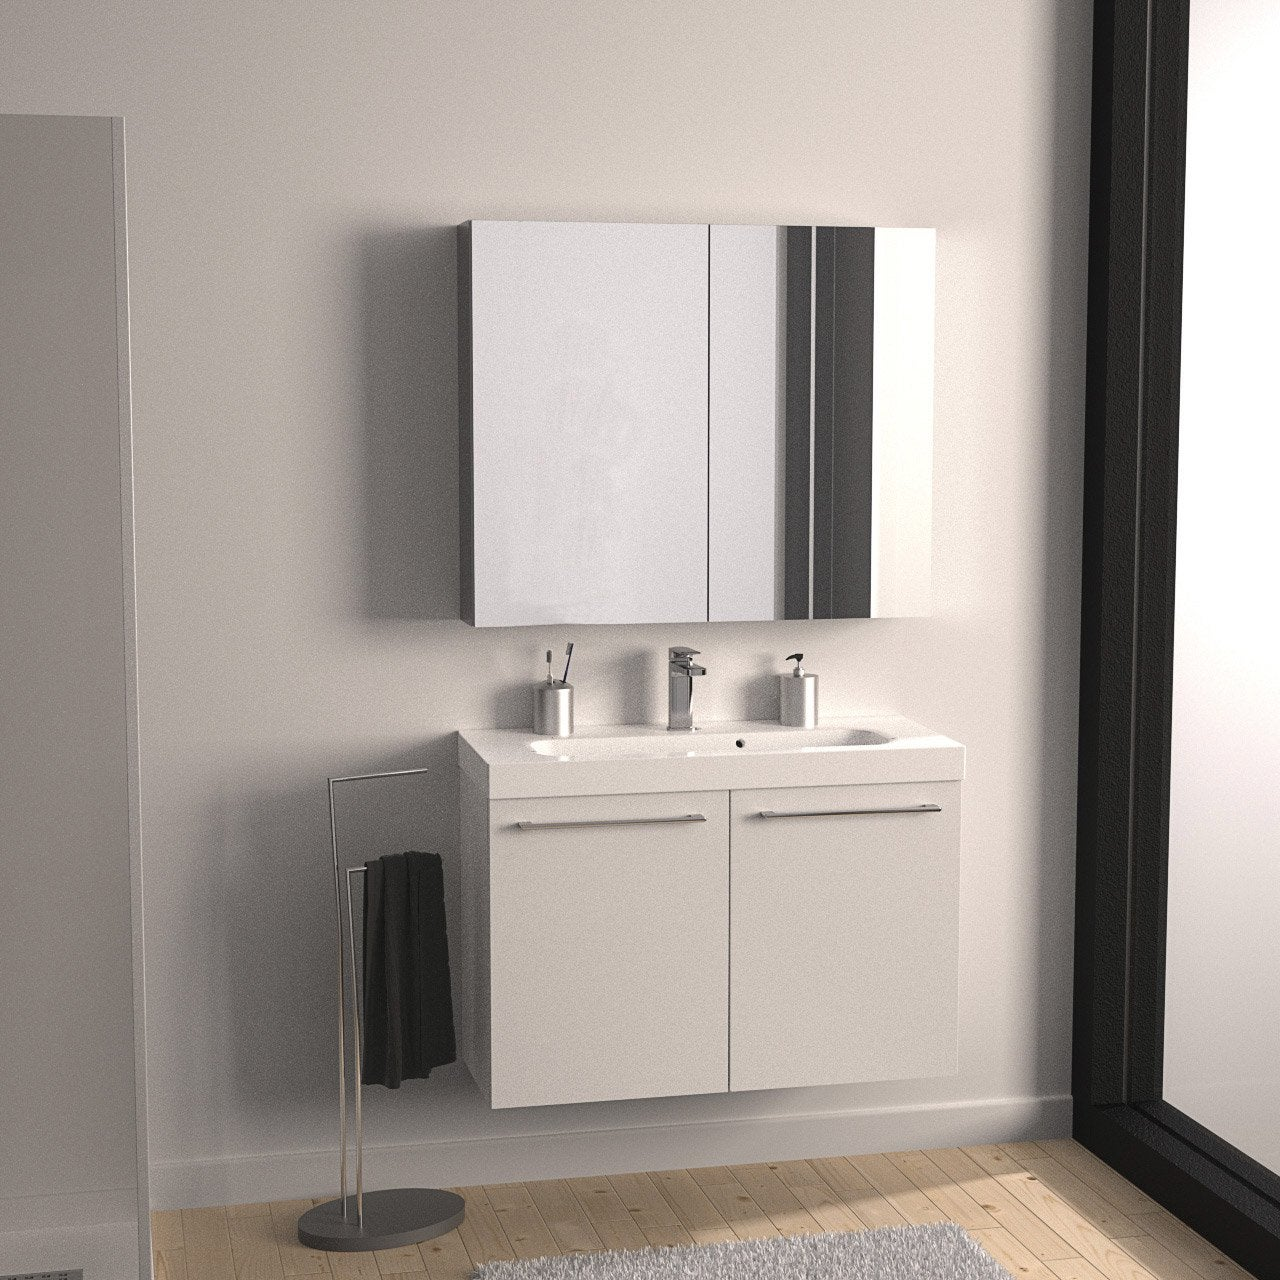 Meuble sous vasque x x cm blanc sensea for Meuble vasque 70 cm leroy merlin